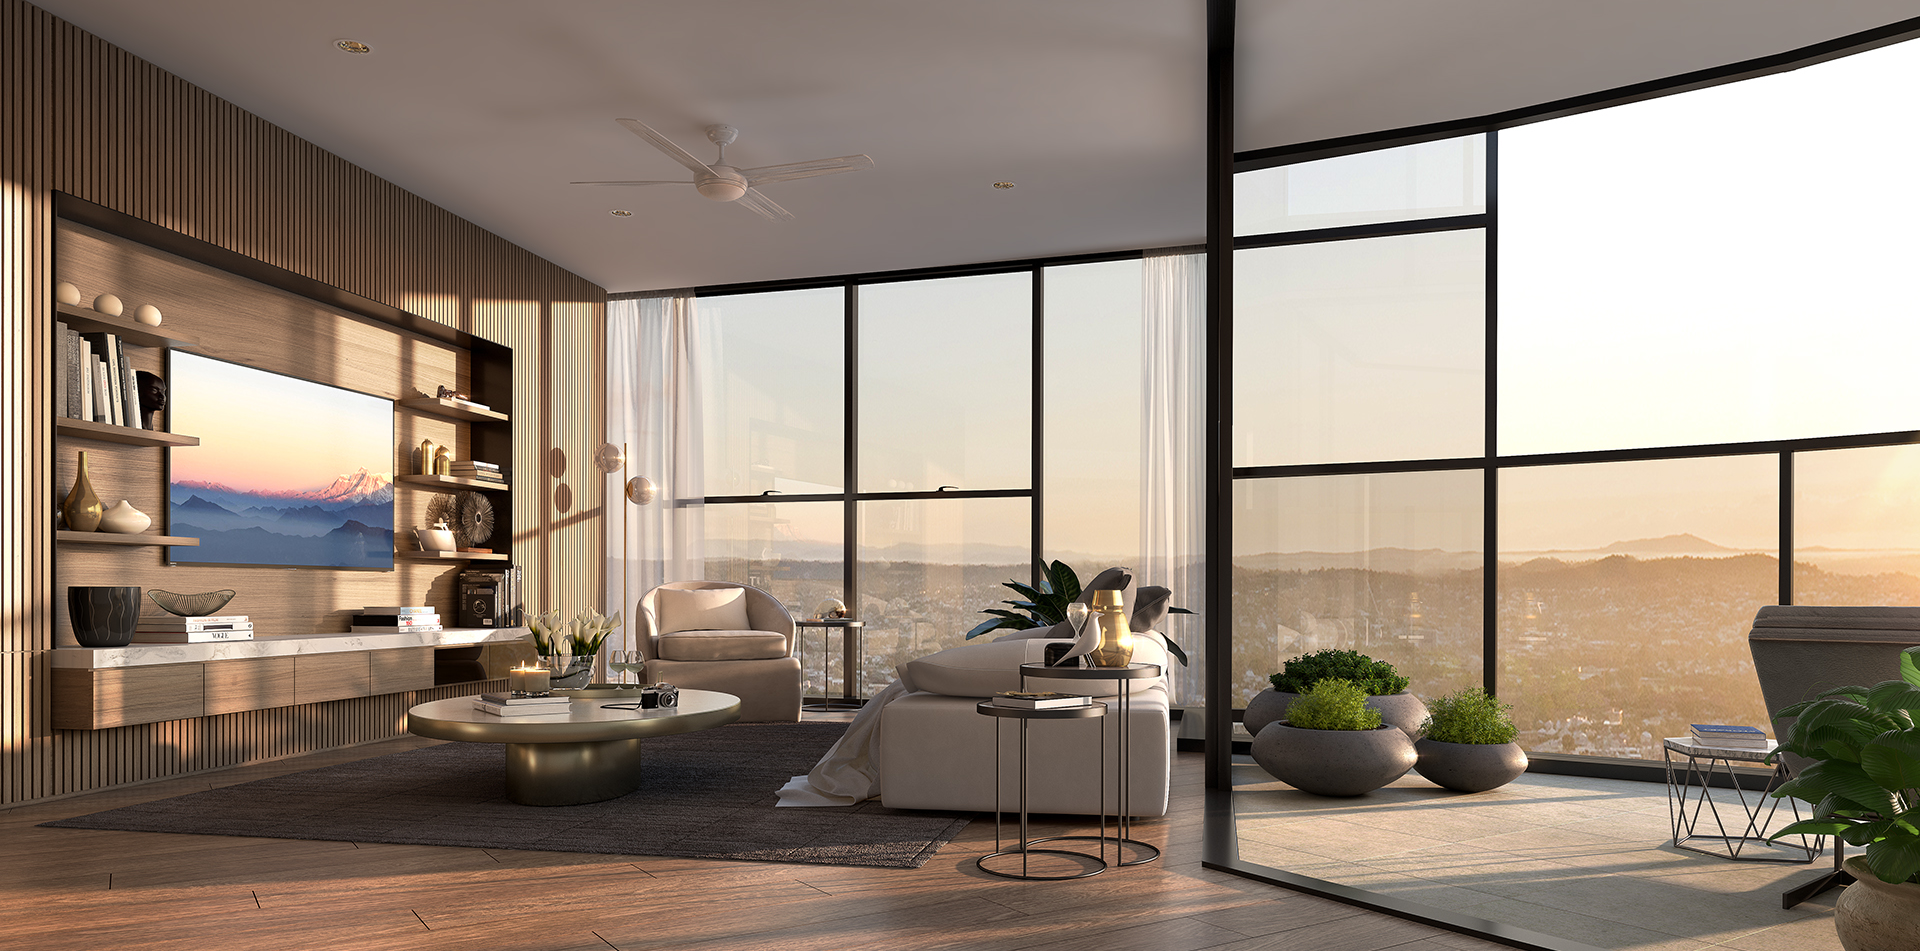 Copy of The One Residences 3 bed Living.